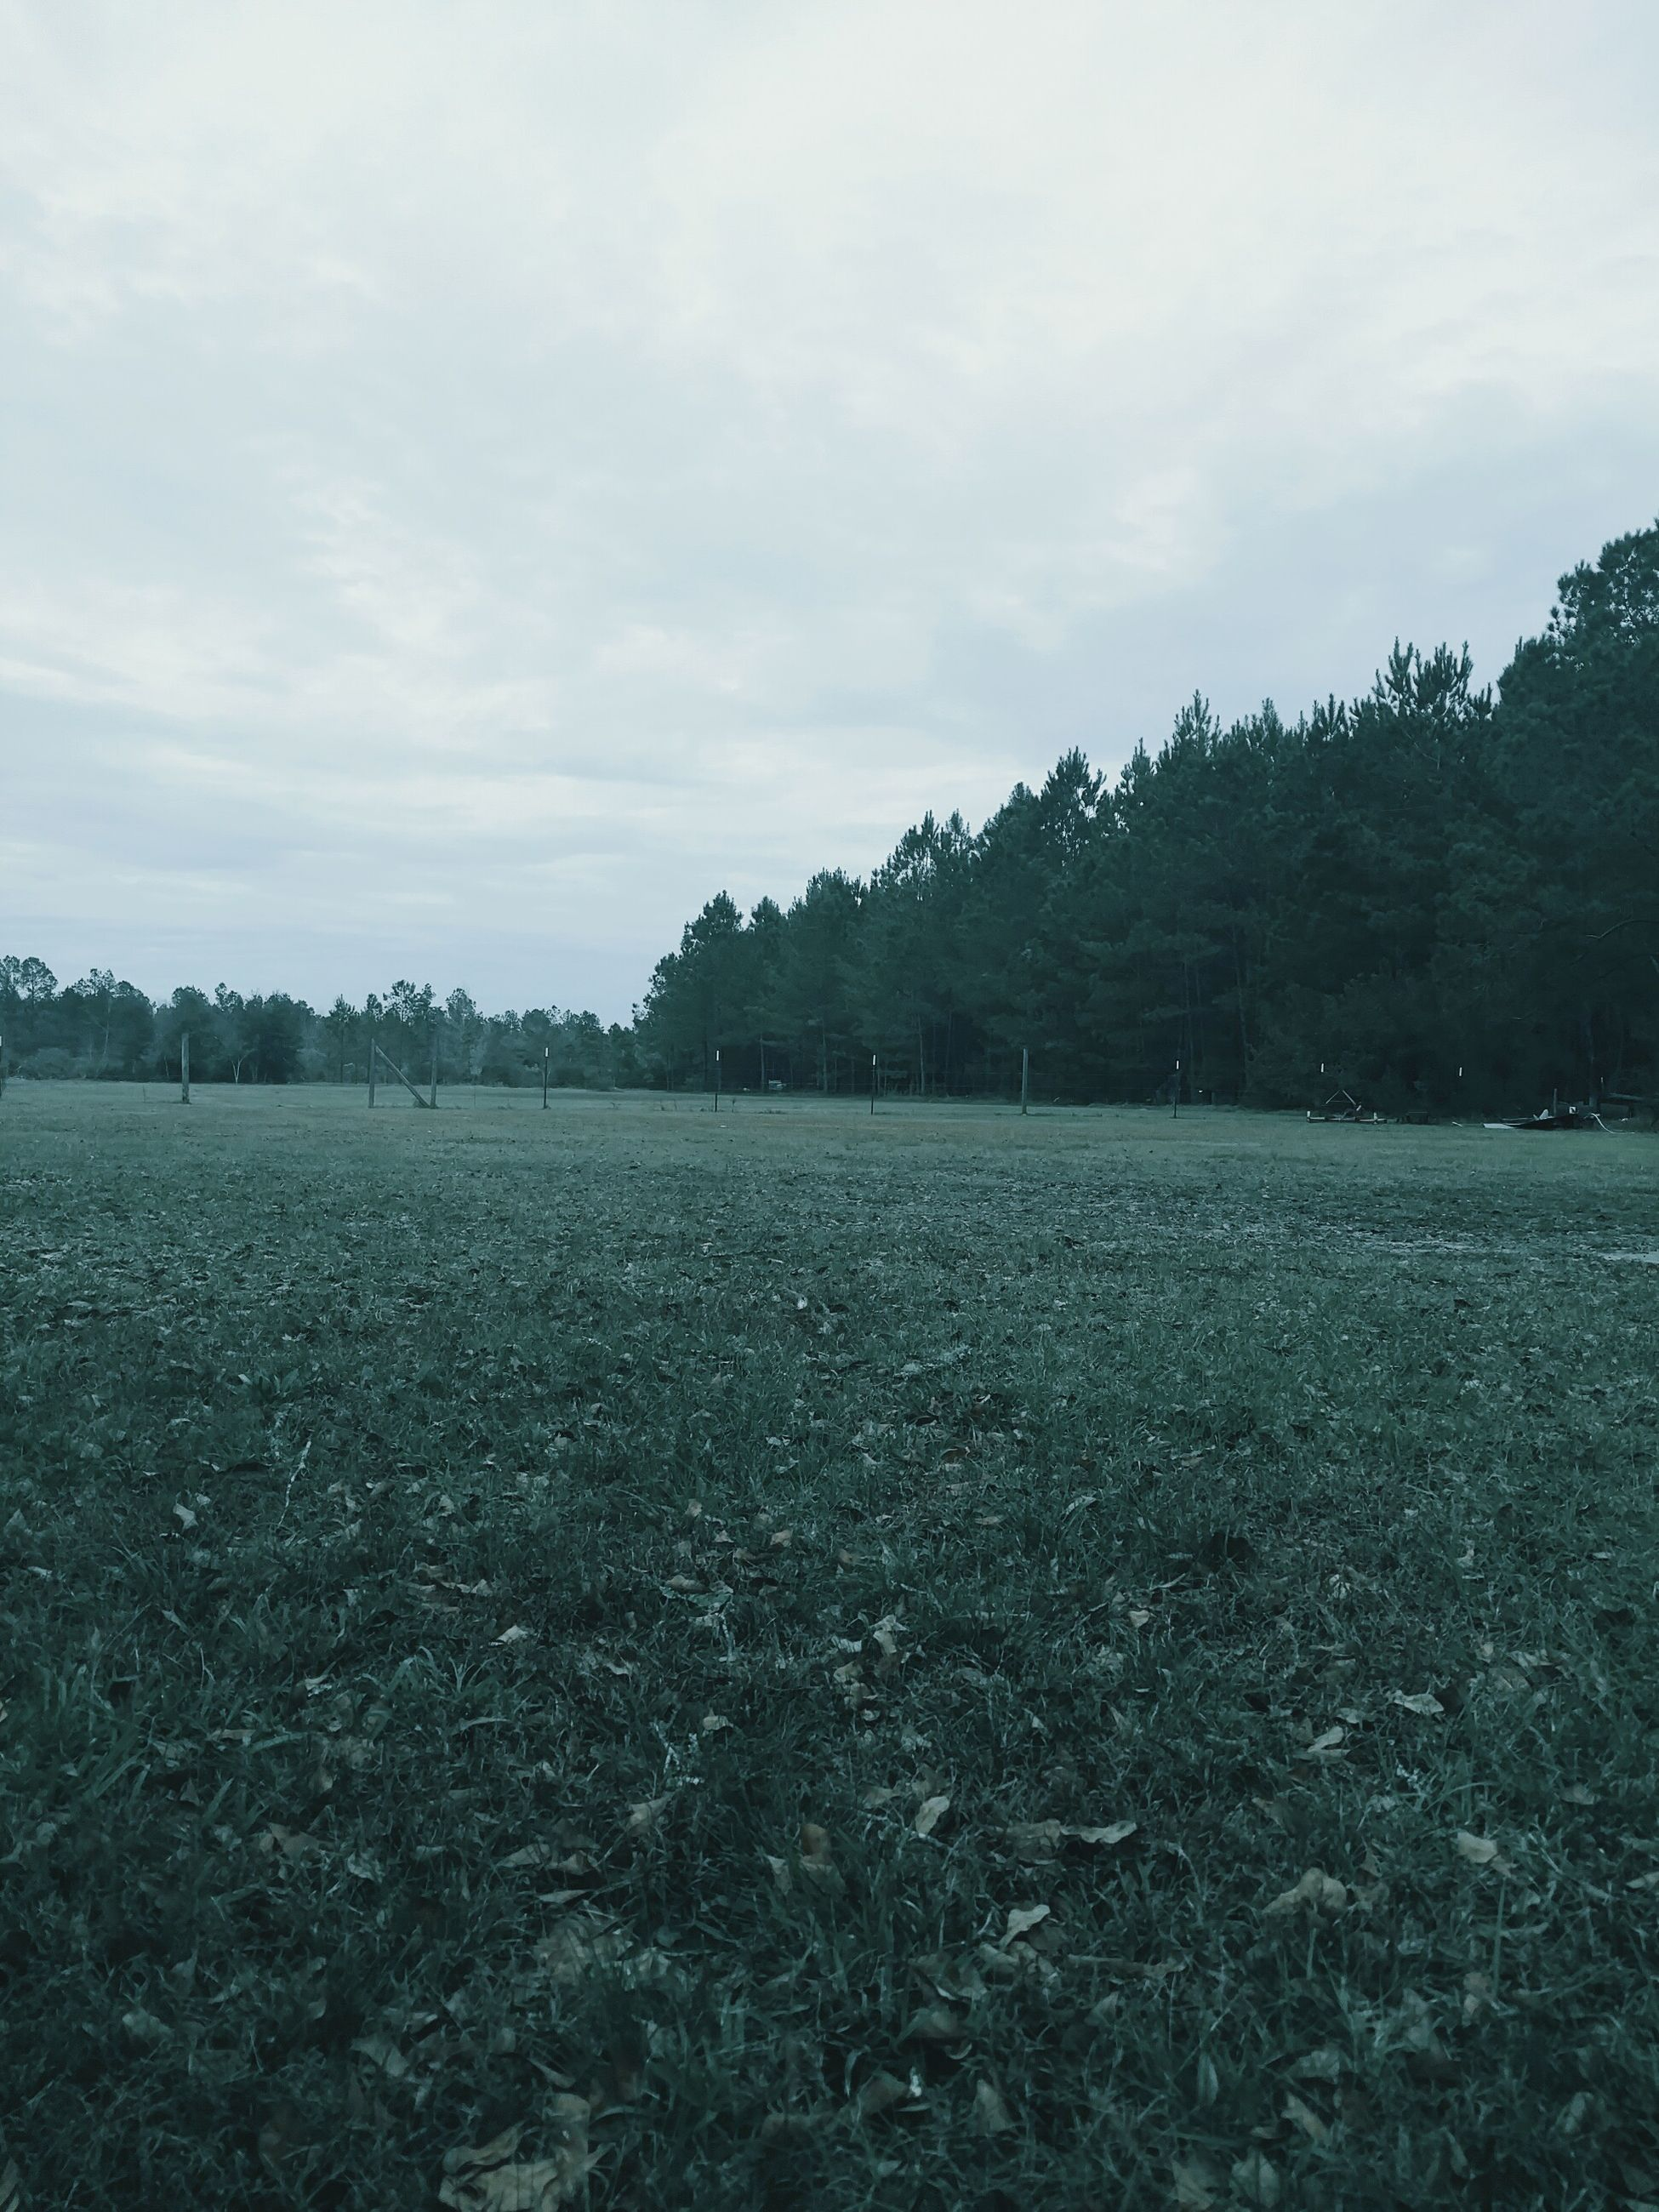 sky, tranquil scene, tranquility, tree, scenics, landscape, cloud - sky, beauty in nature, nature, field, cloud, growth, non-urban scene, cloudy, day, idyllic, lake, grass, outdoors, weather